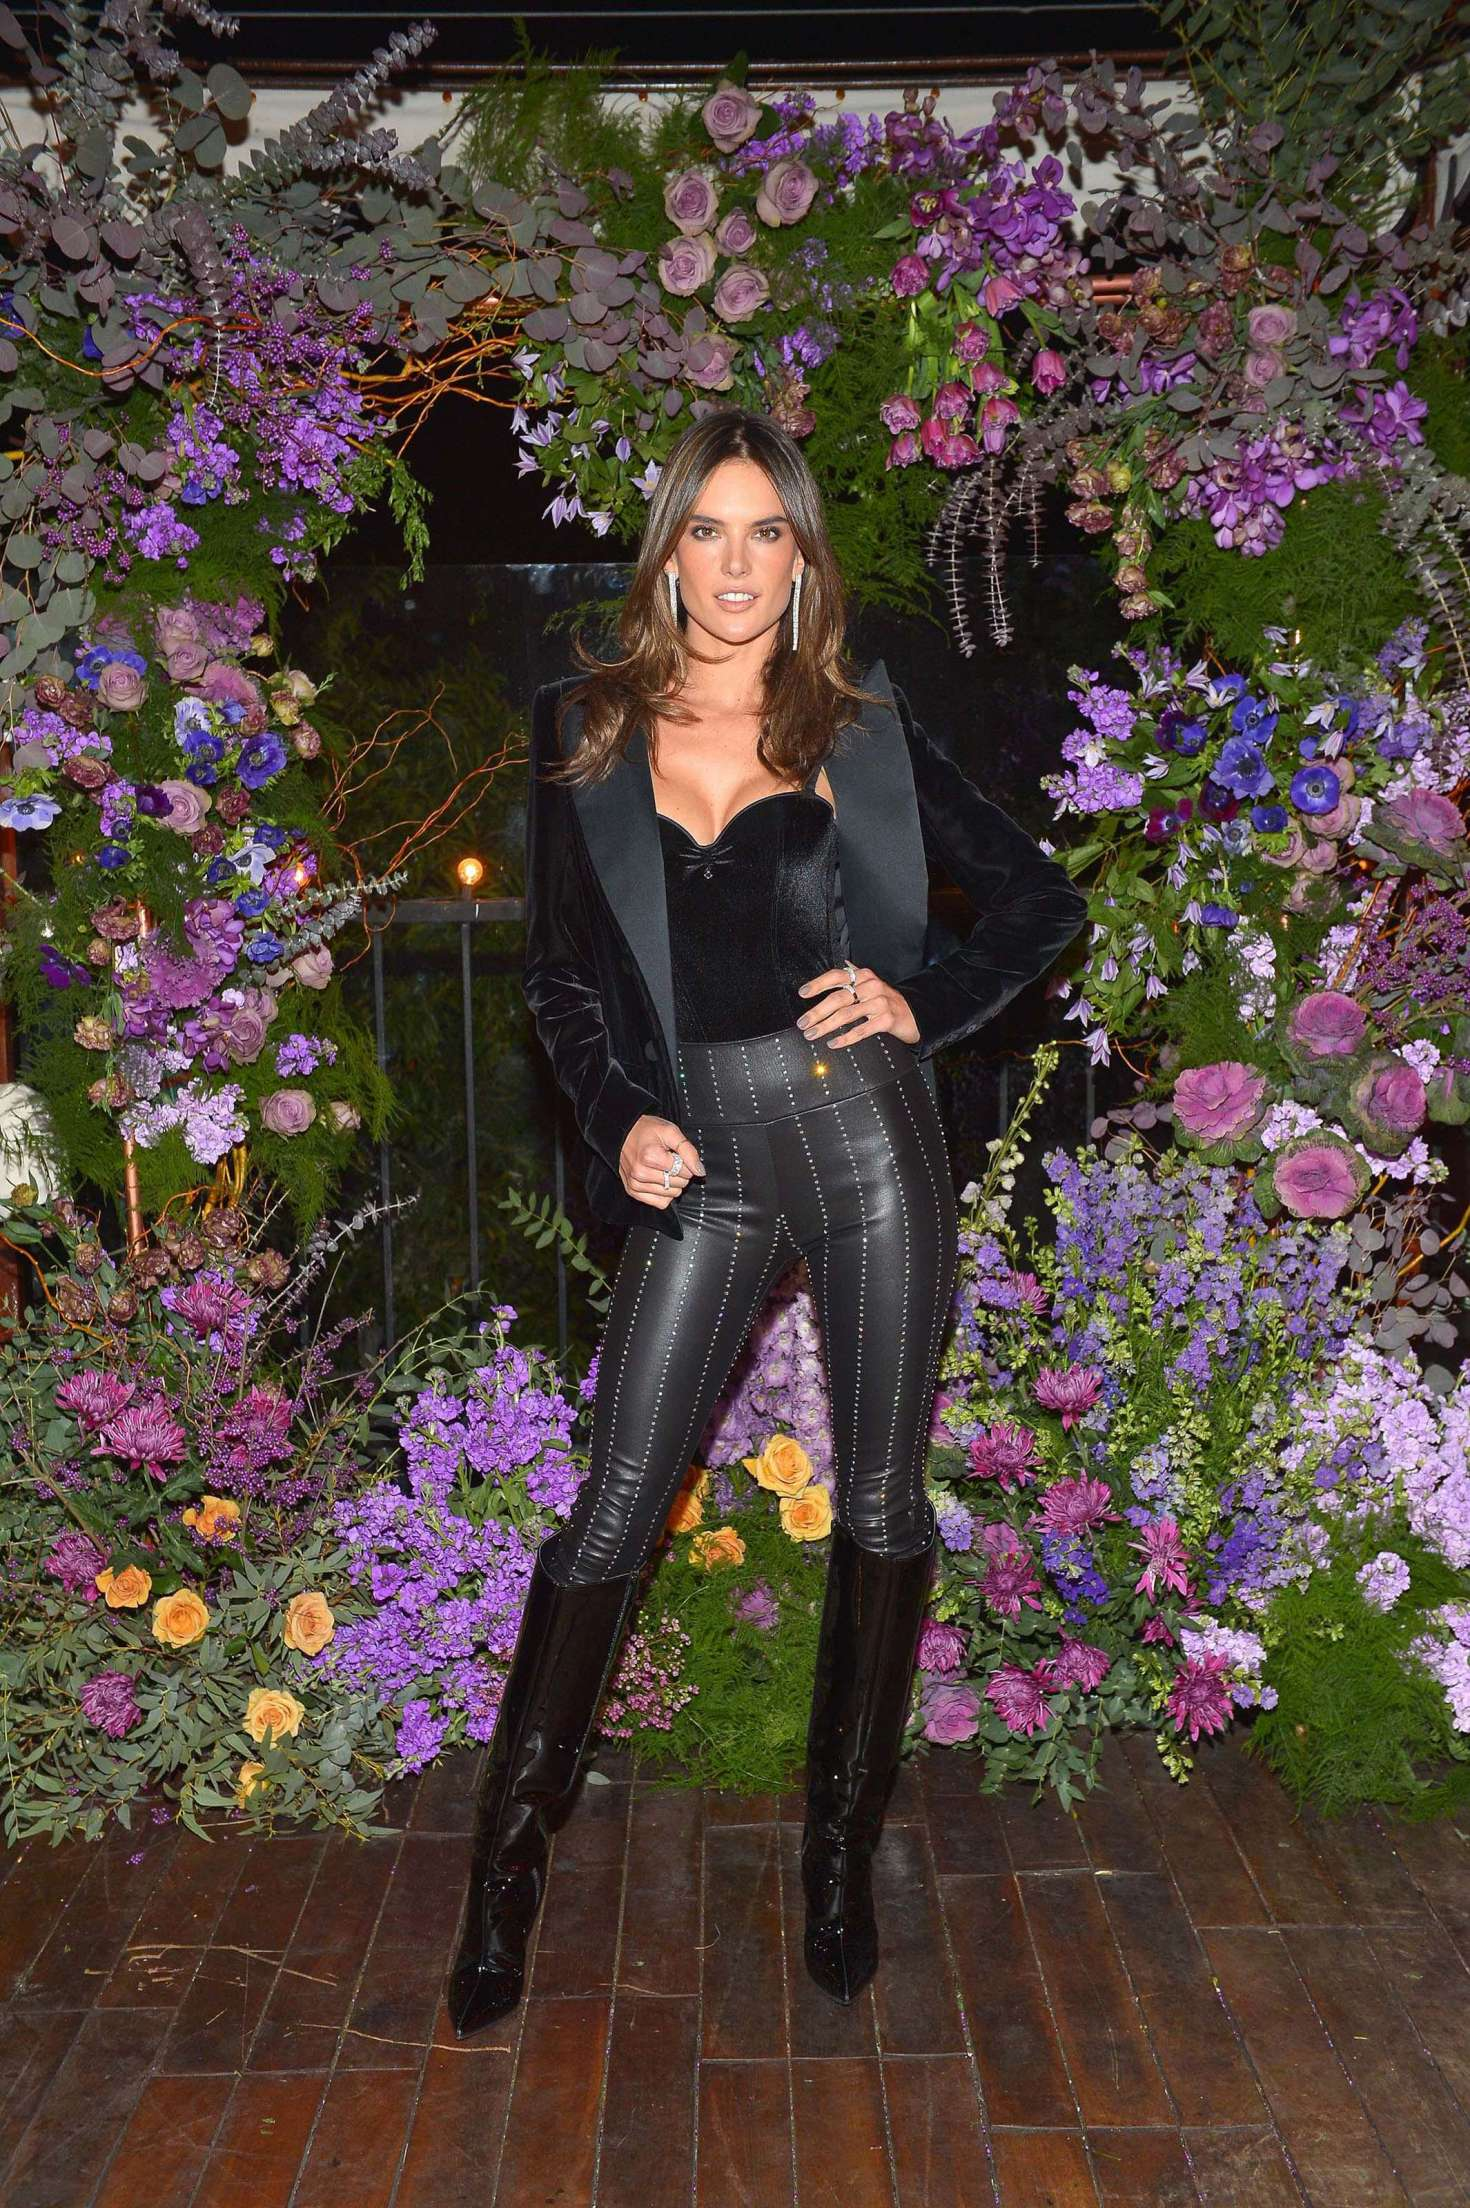 Alessandra Ambrosio – Alessandra Ambrosio And Lascana Present 2018 Campaign In Hollywood